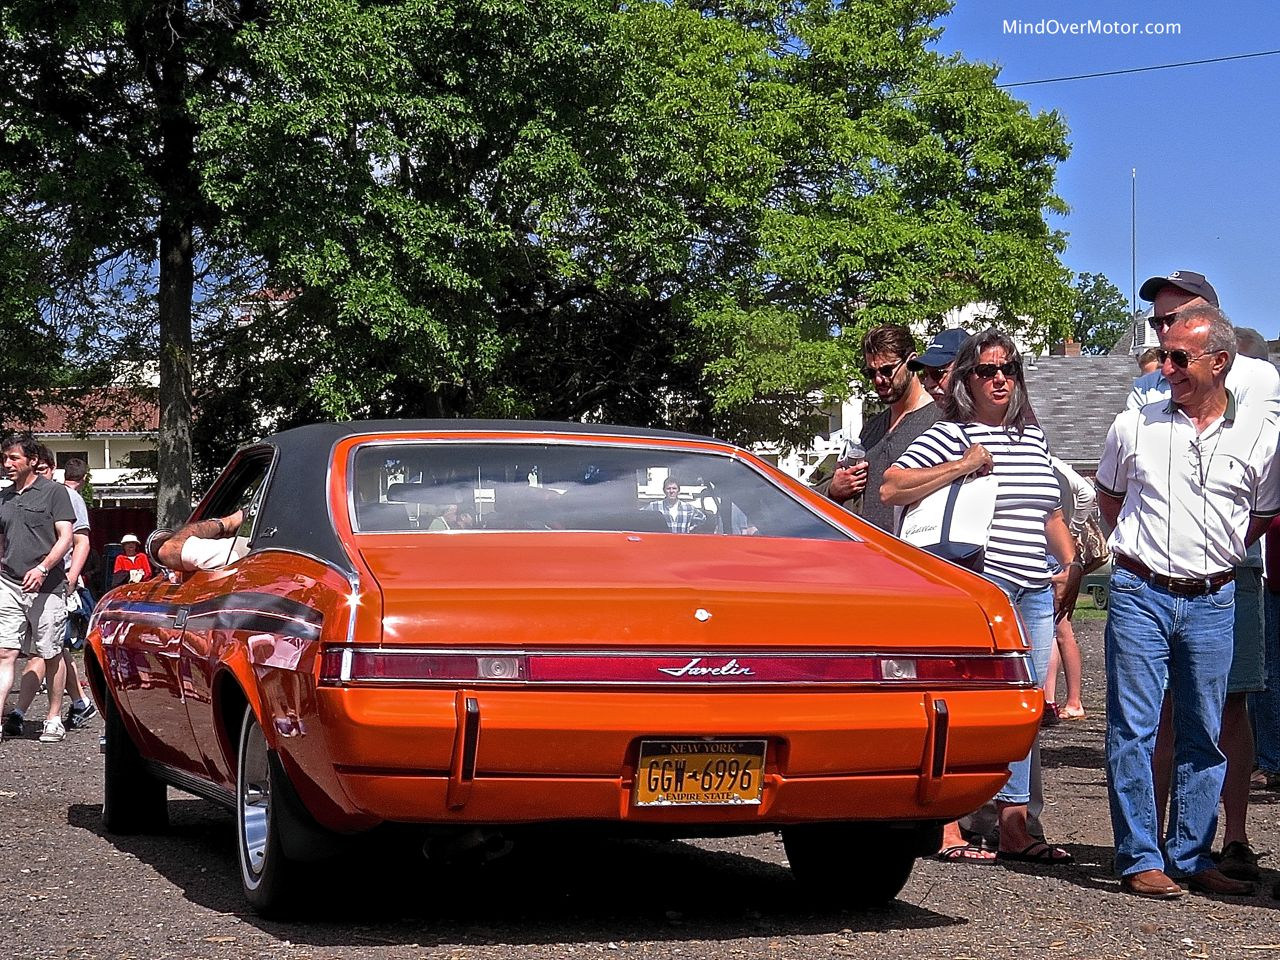 1969 AMC Javelin SST Rear